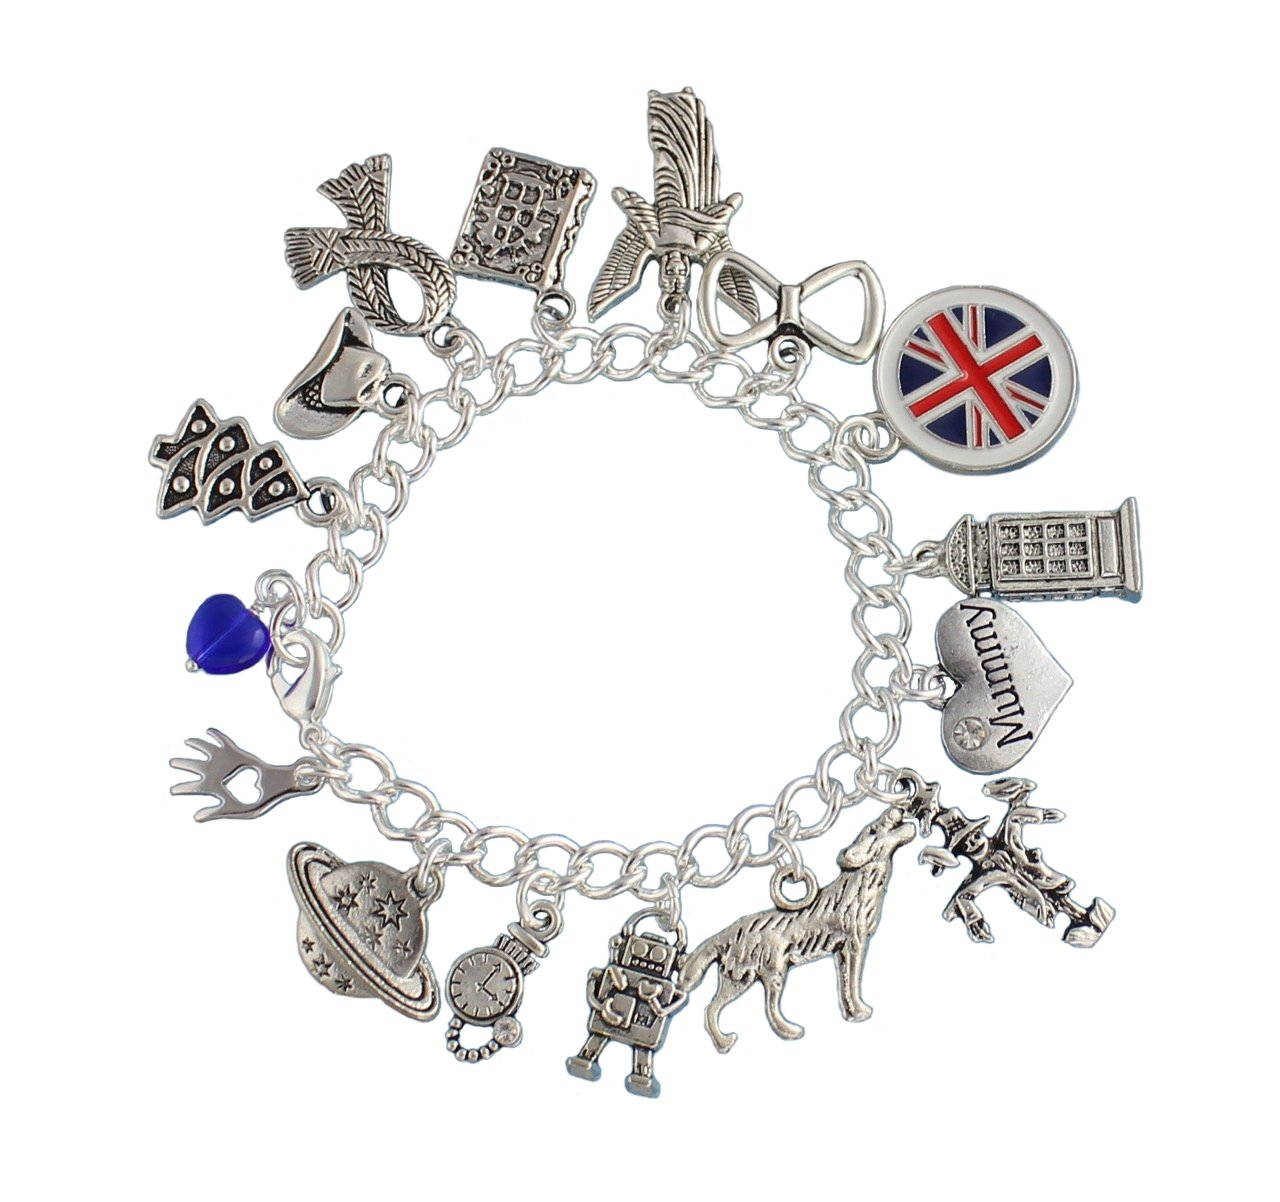 Night Owl Jewelry Time Lord Silver Plated Charm Bracelet: Police Box, Angel, Wolf, UK Flag, Bow Tie, Scarf- Medium (7.5 Inches)